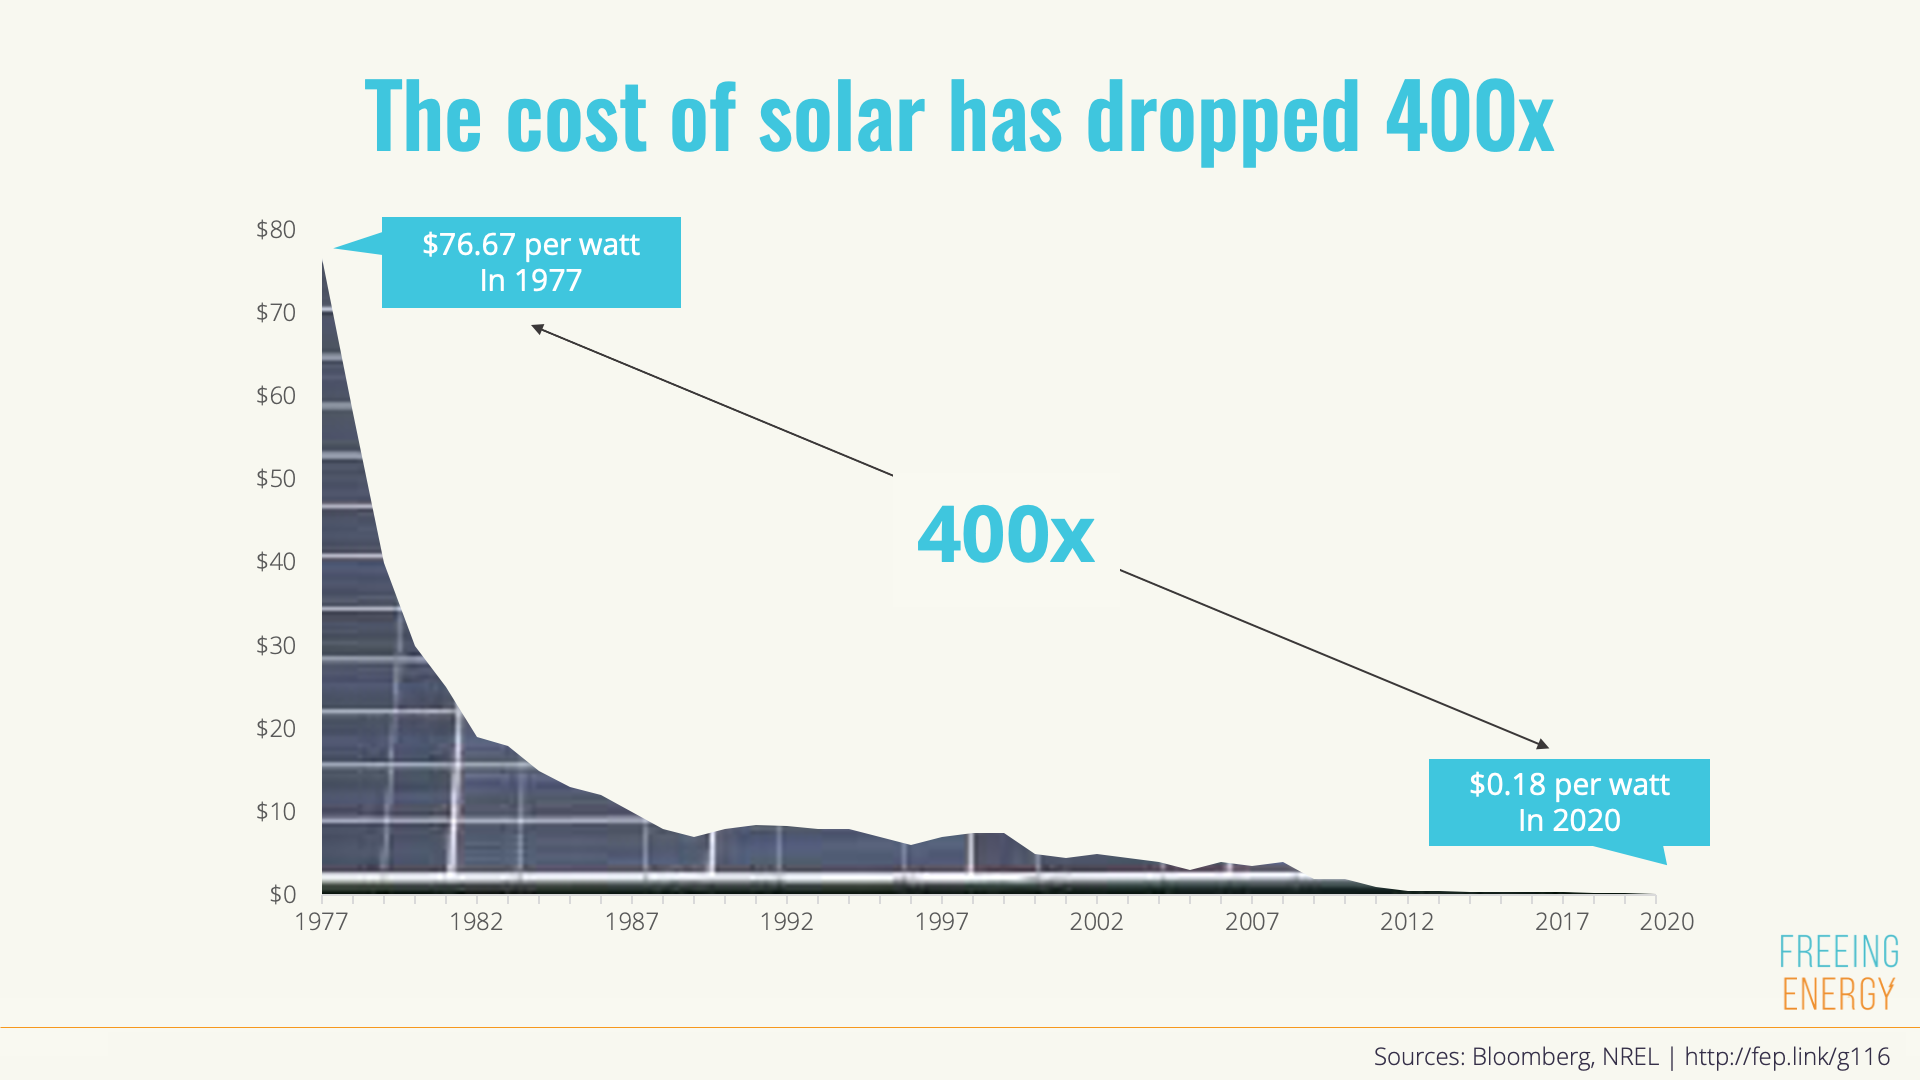 The cost of solar has dropped over 400 times since 1977